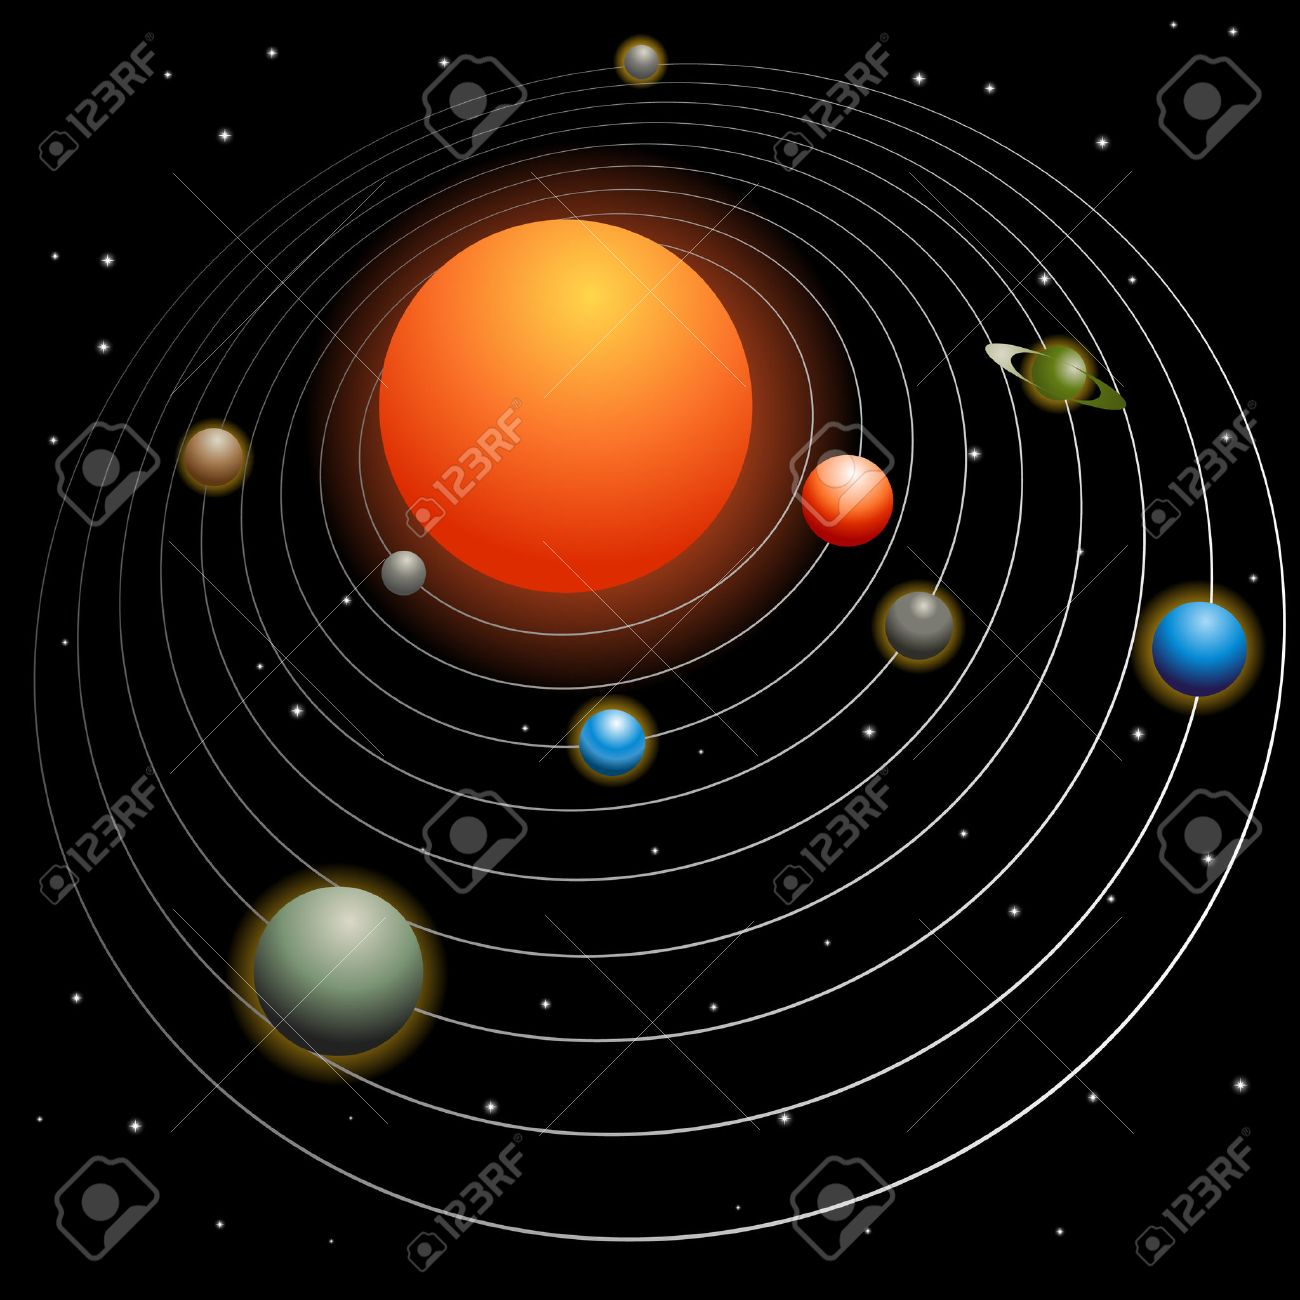 Solar System Image Isolated On A Black Background. Royalty Free ...